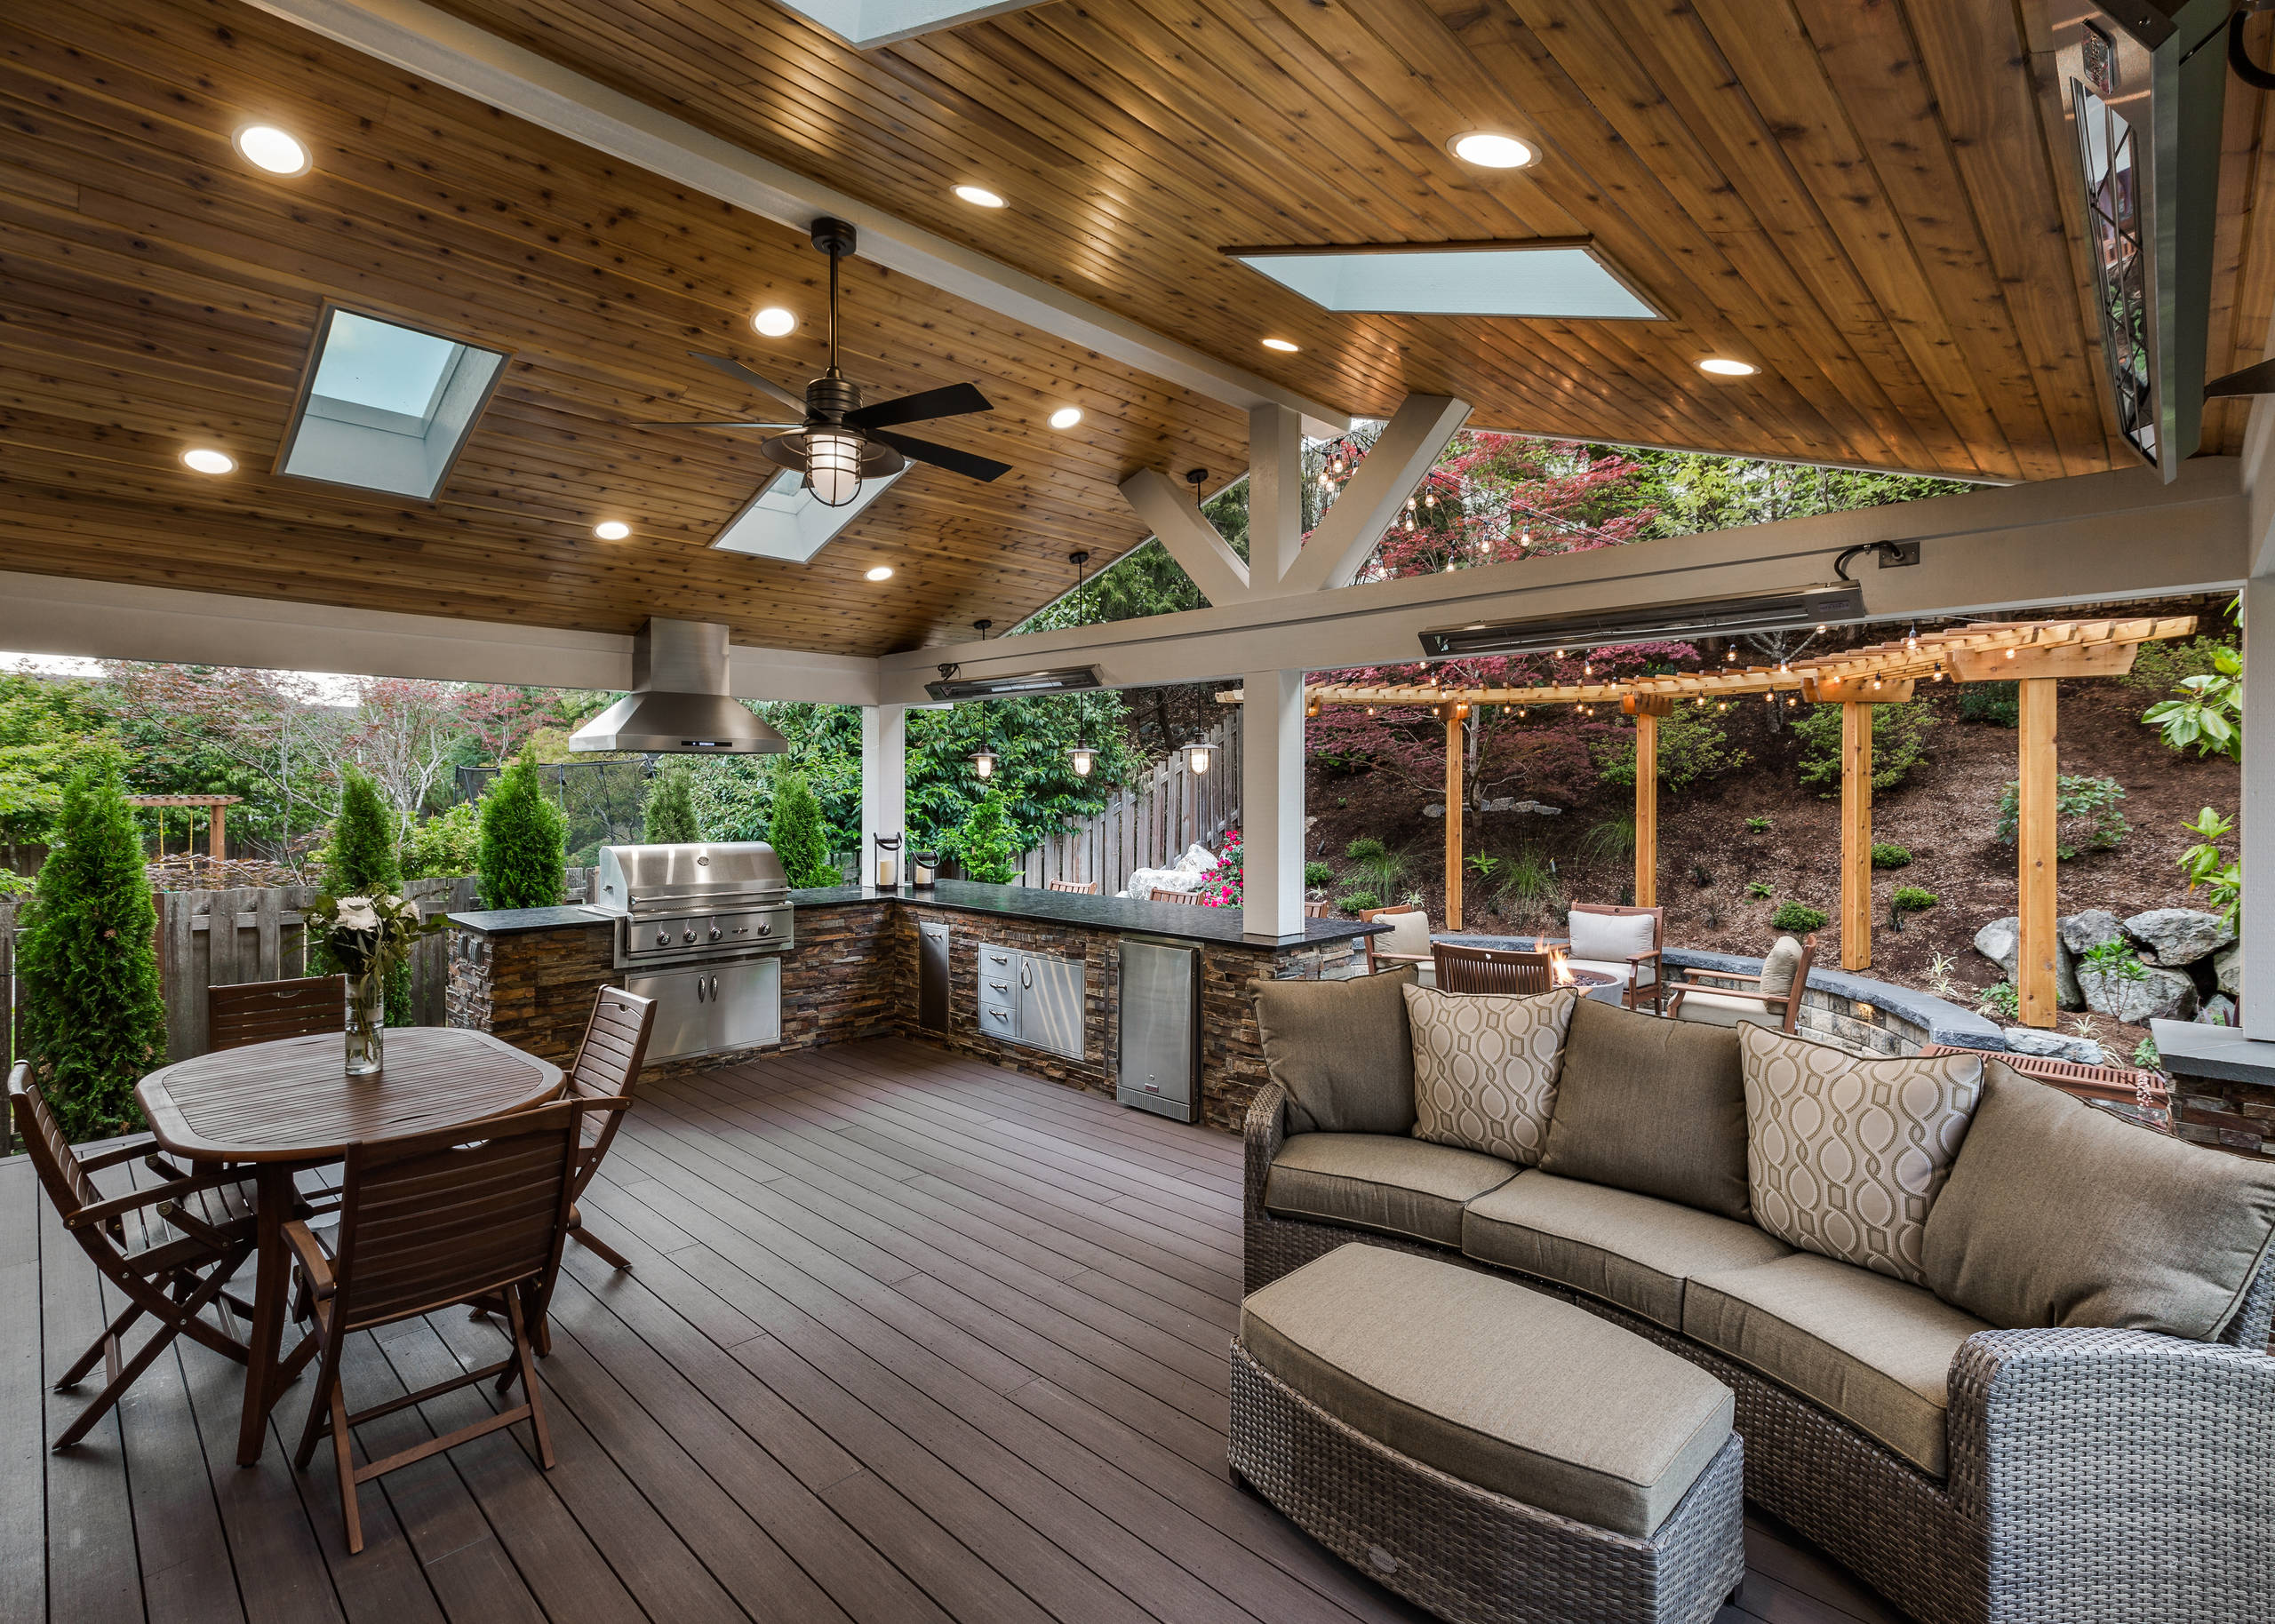 18 Beautiful Deck With A Roof Extension Pictures Ideas October 2020 Houzz